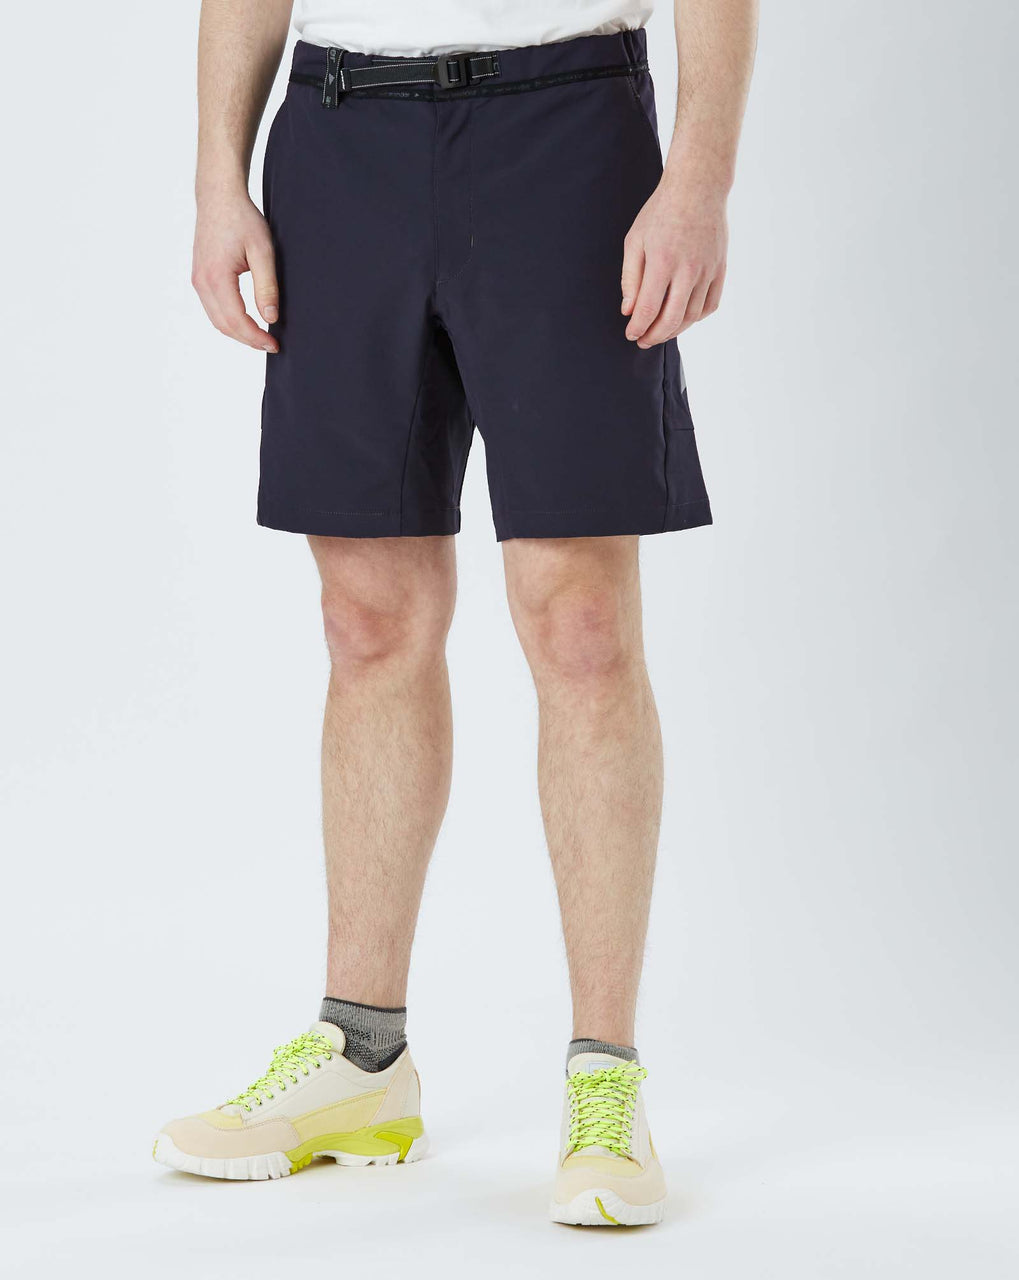 and Wander 2 Way Stretch Short Pants (Navy)